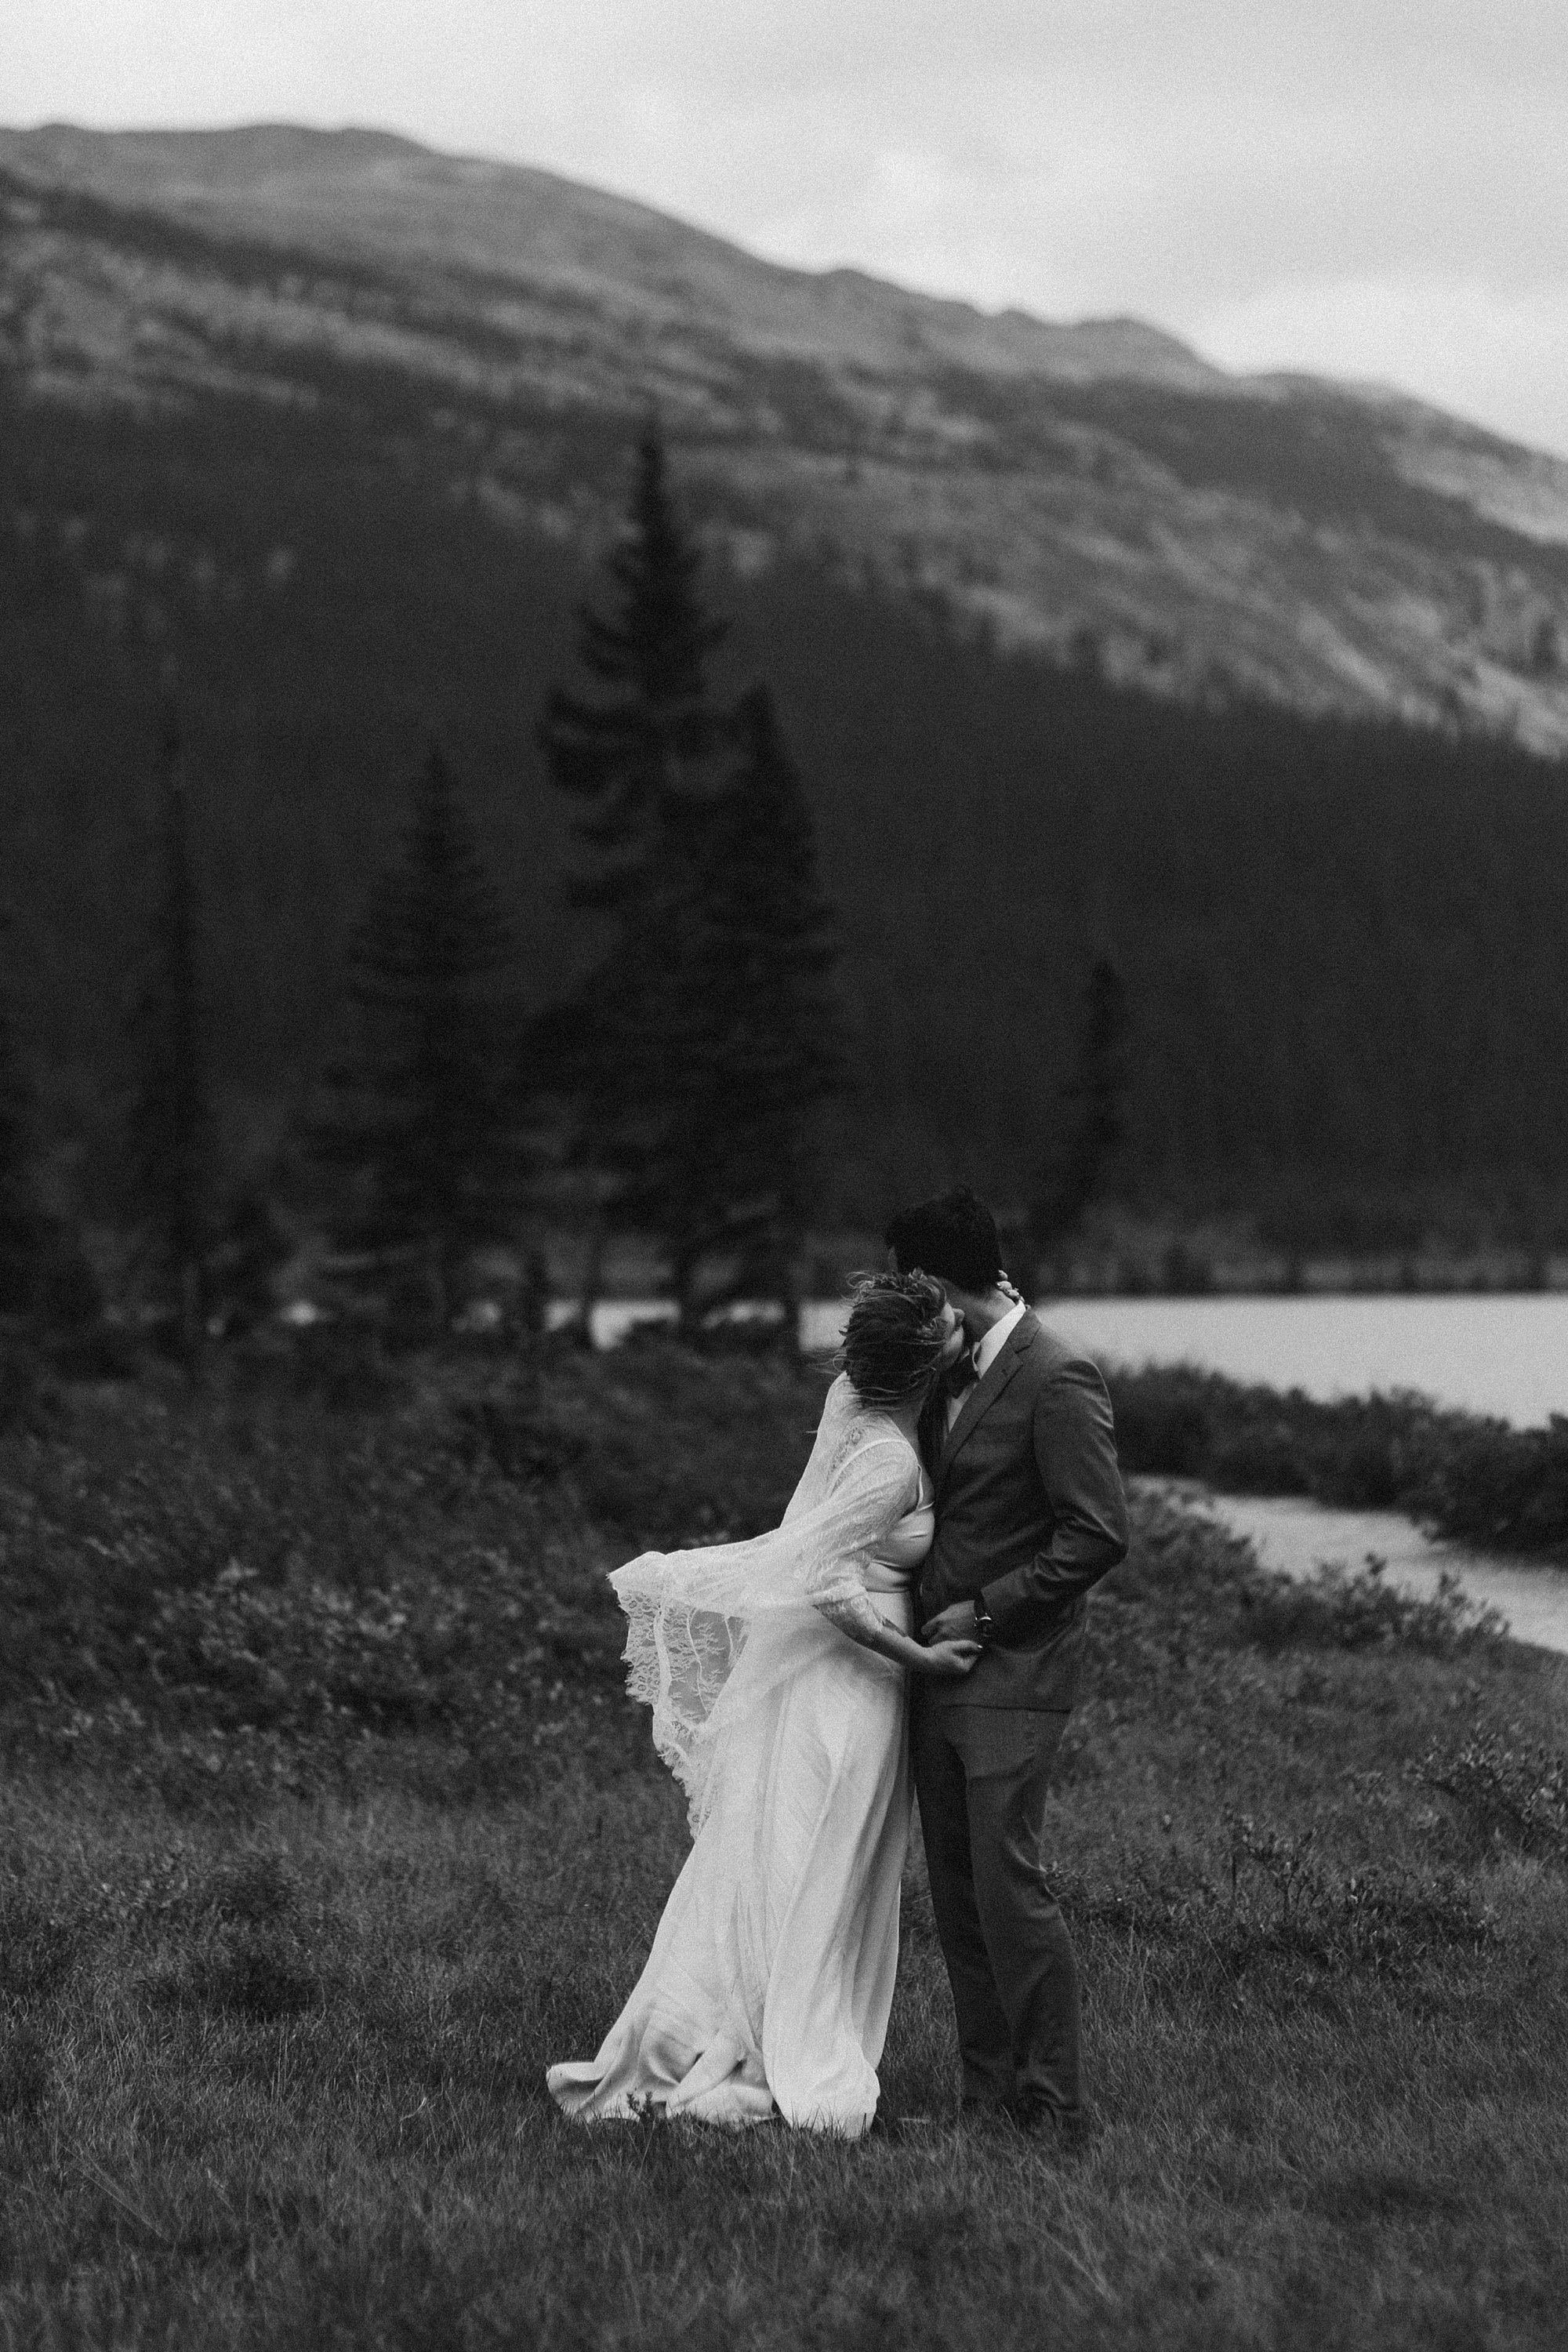 banff-canada-elopement-wedding_0052.jpg